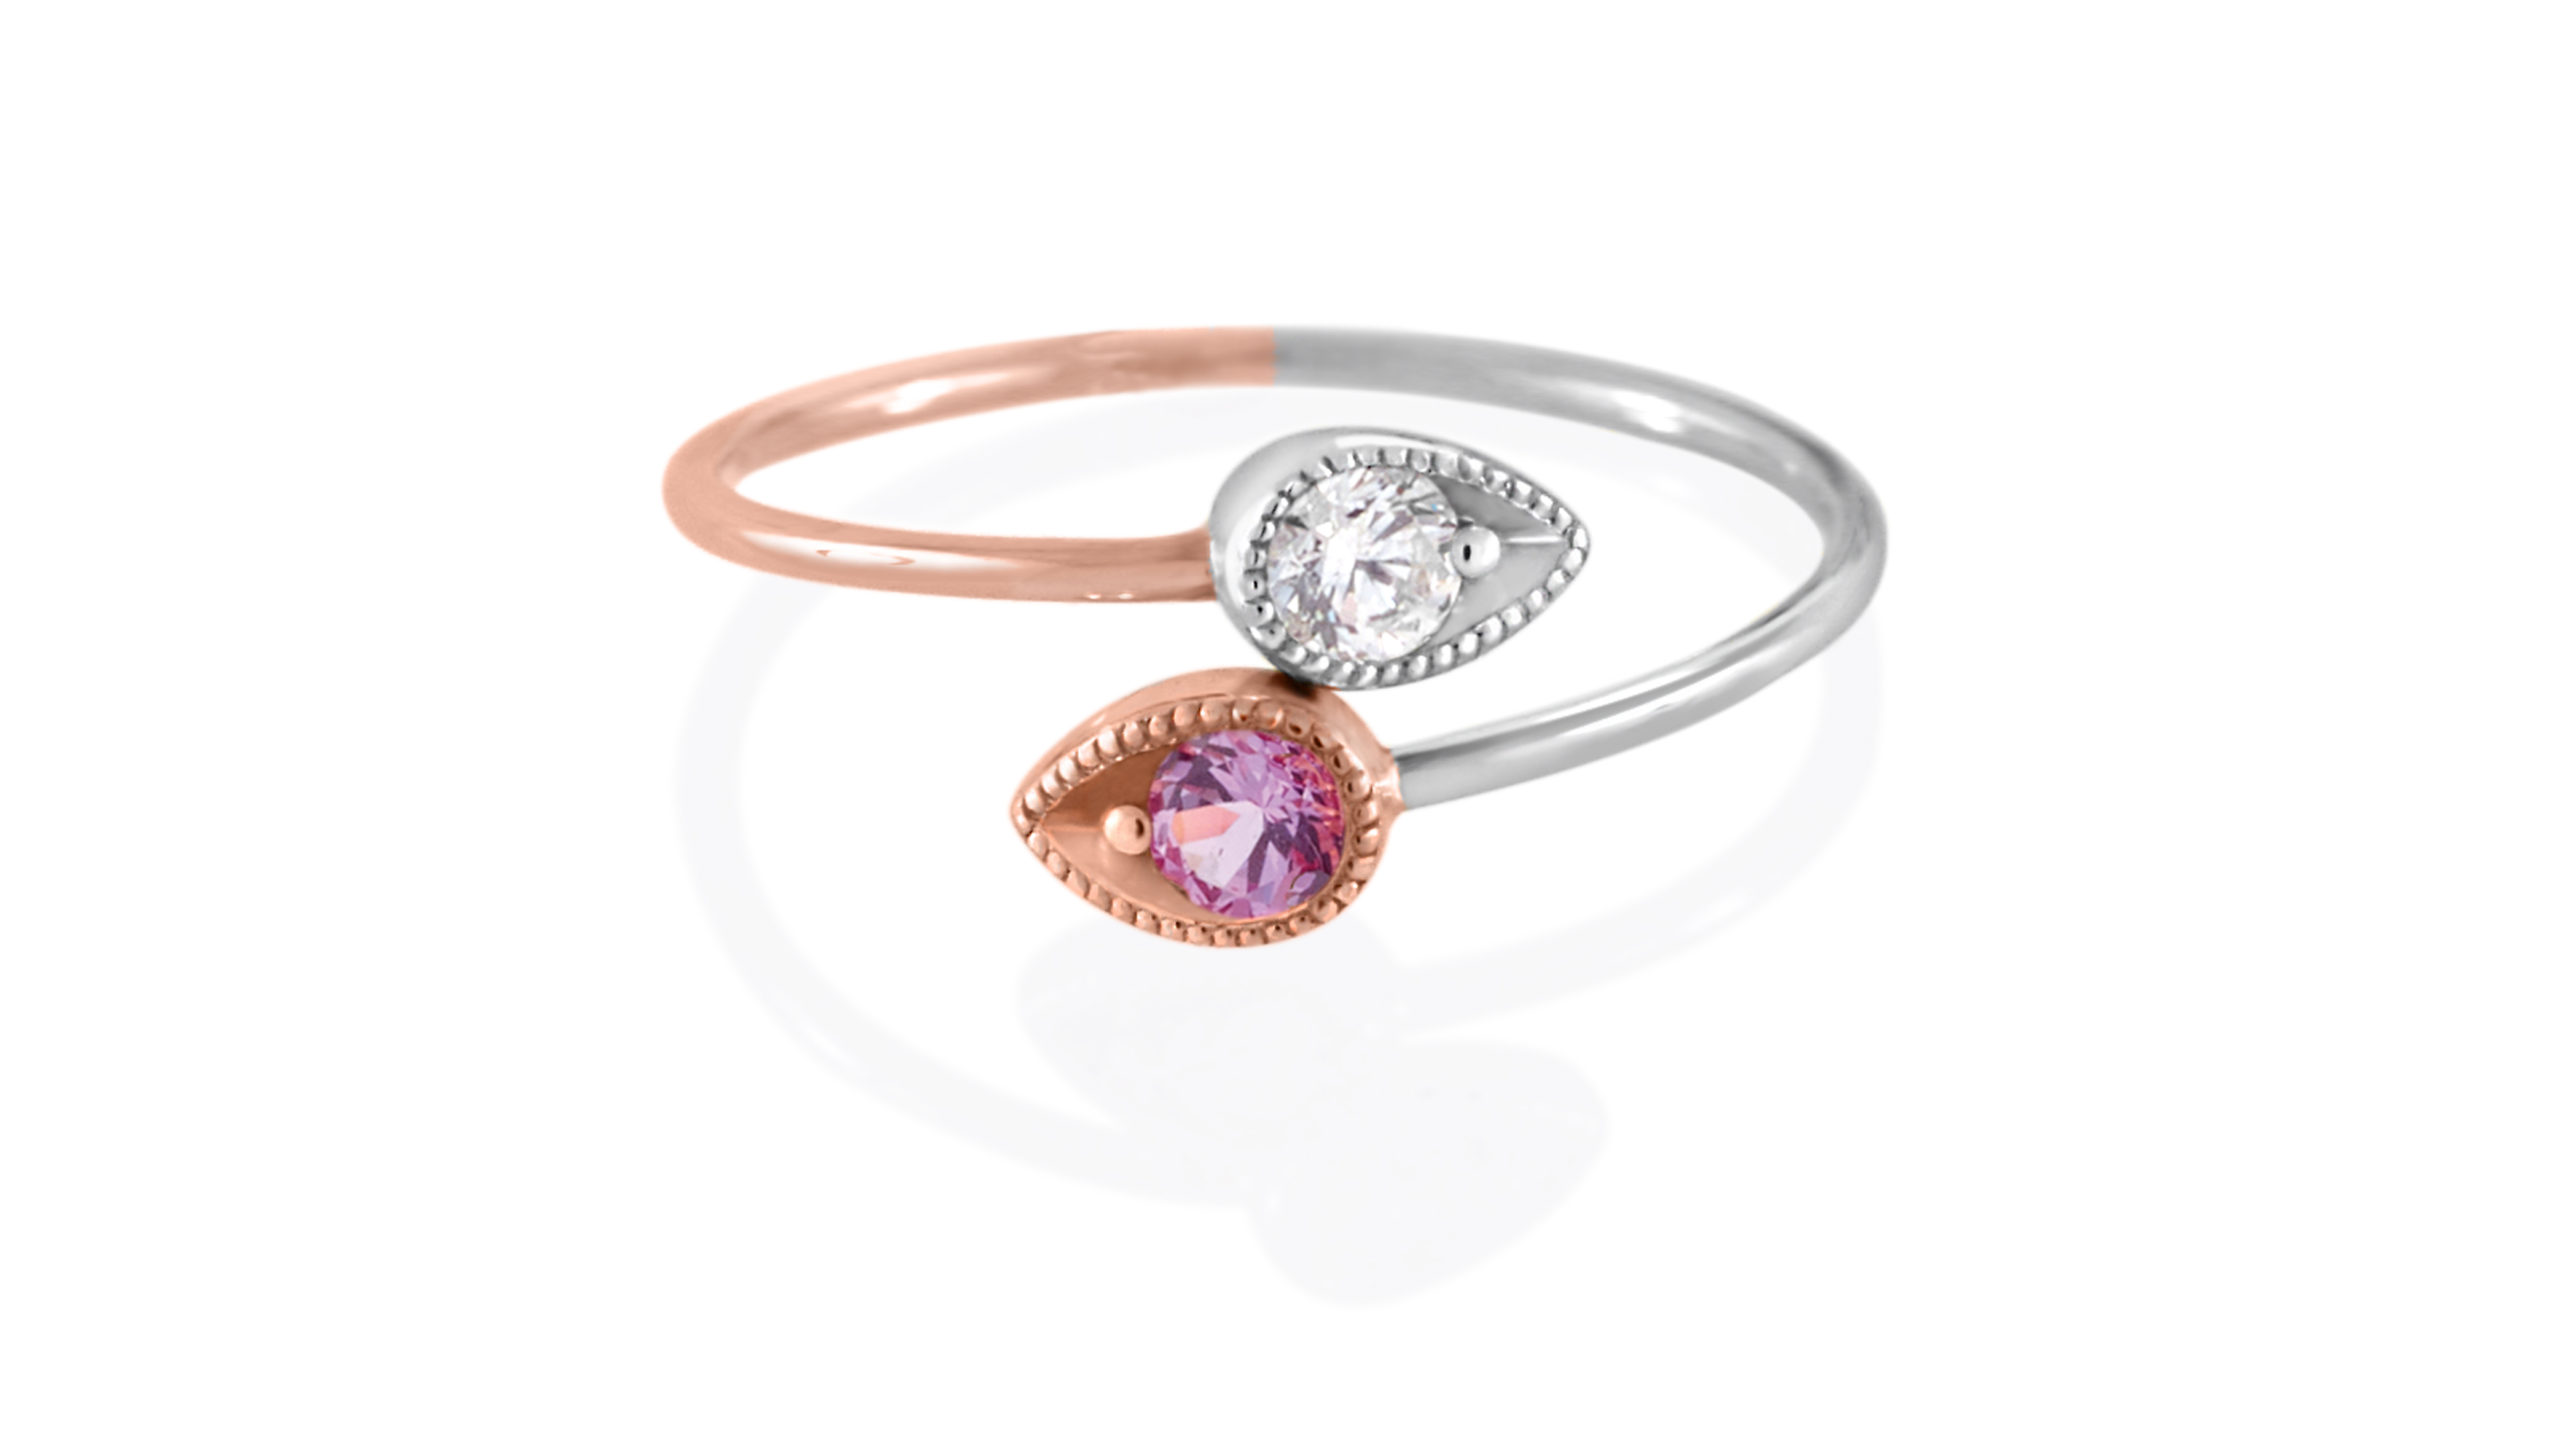 14 Carat Two Tone White & Rose Gold Spiral Ring With Pink & White Sapphire Gemstones